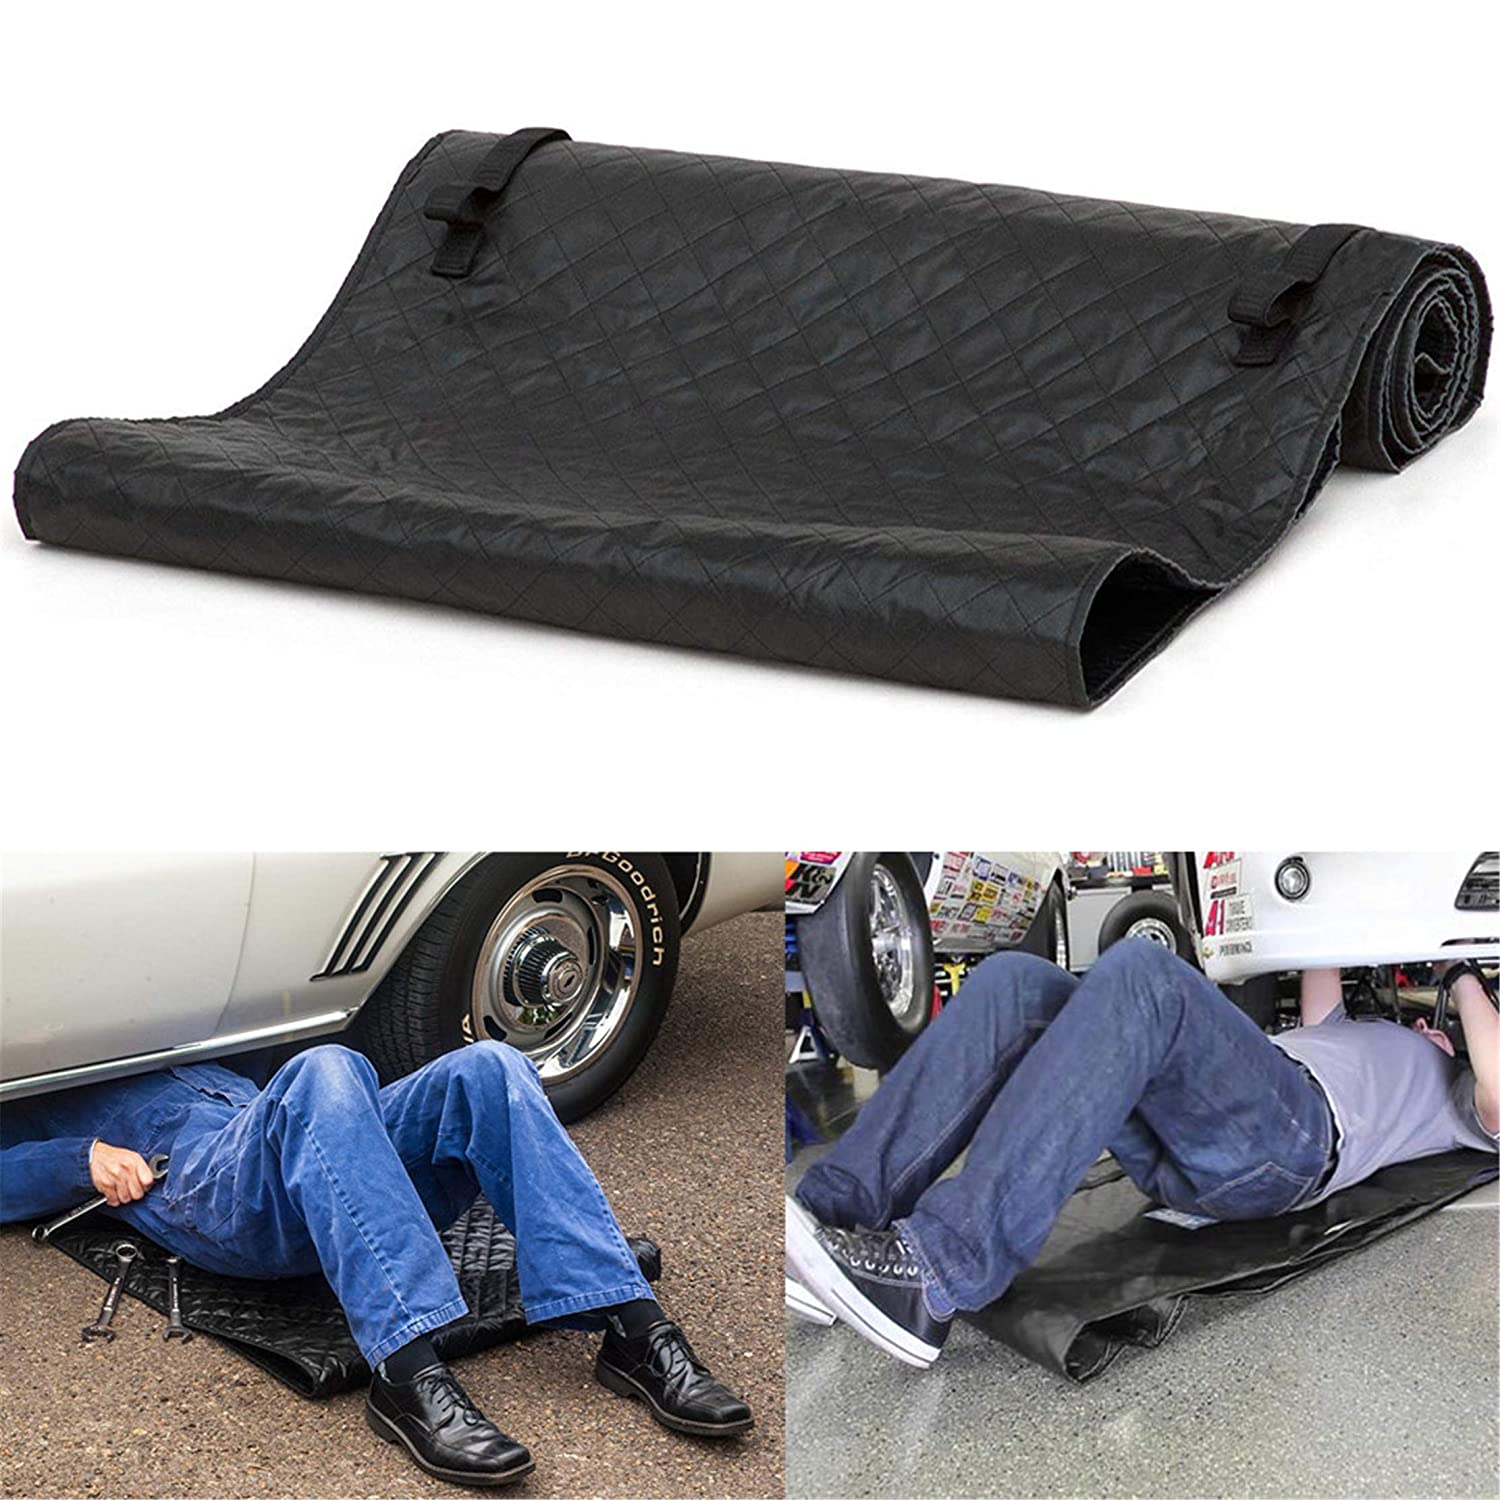 happy event Schwarzer Automobil Kriecher | Autofussmatte | Magisch Kriecher Rollendes Pad Für die Arbeit am Boden | Magic Creeper Pad Black Automotive Creeper Rolling Pad for Working on The Ground